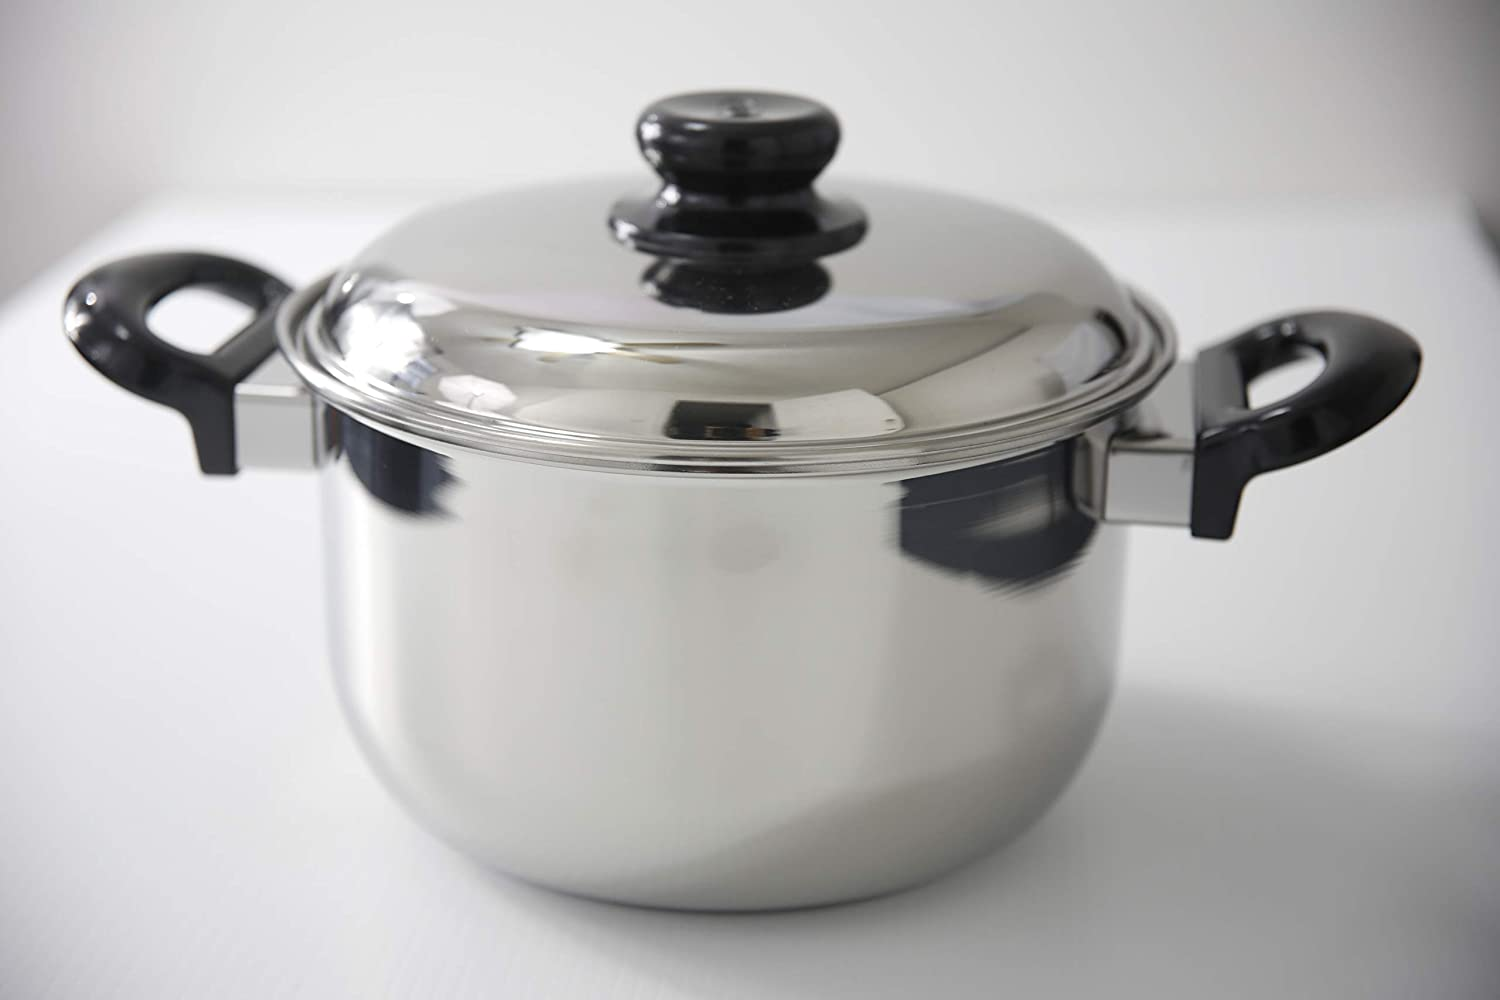 SS1 Stainless Steel Dutch Oven with cover and stay cool bakelite handle (3.7-Qt.)